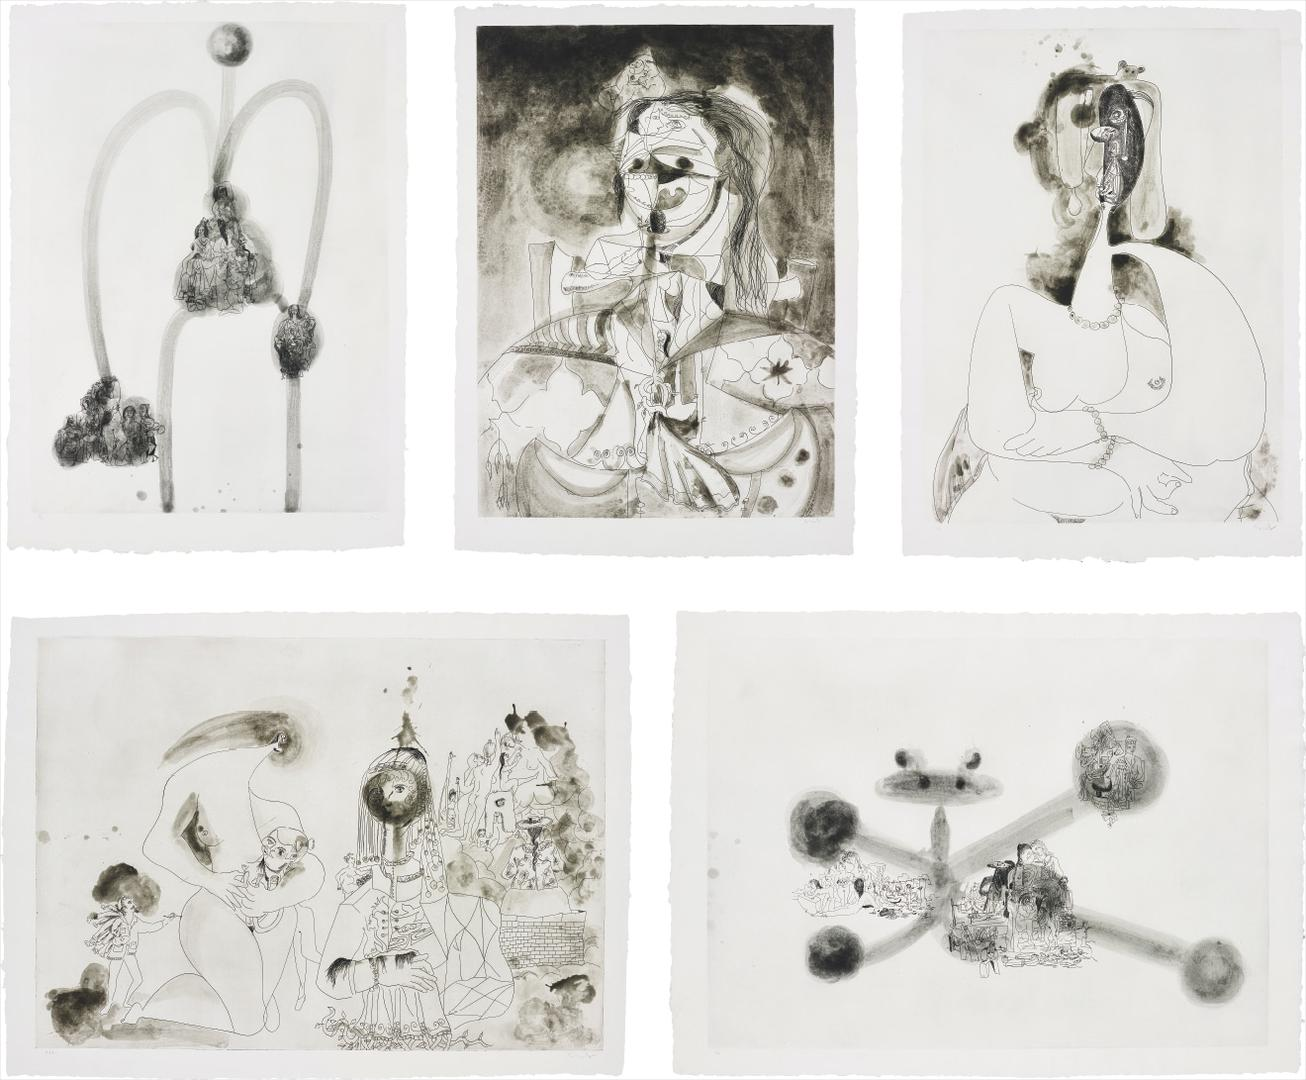 George Condo-More Sketches Of Spain - For Miles Davis: Five Plates-1991